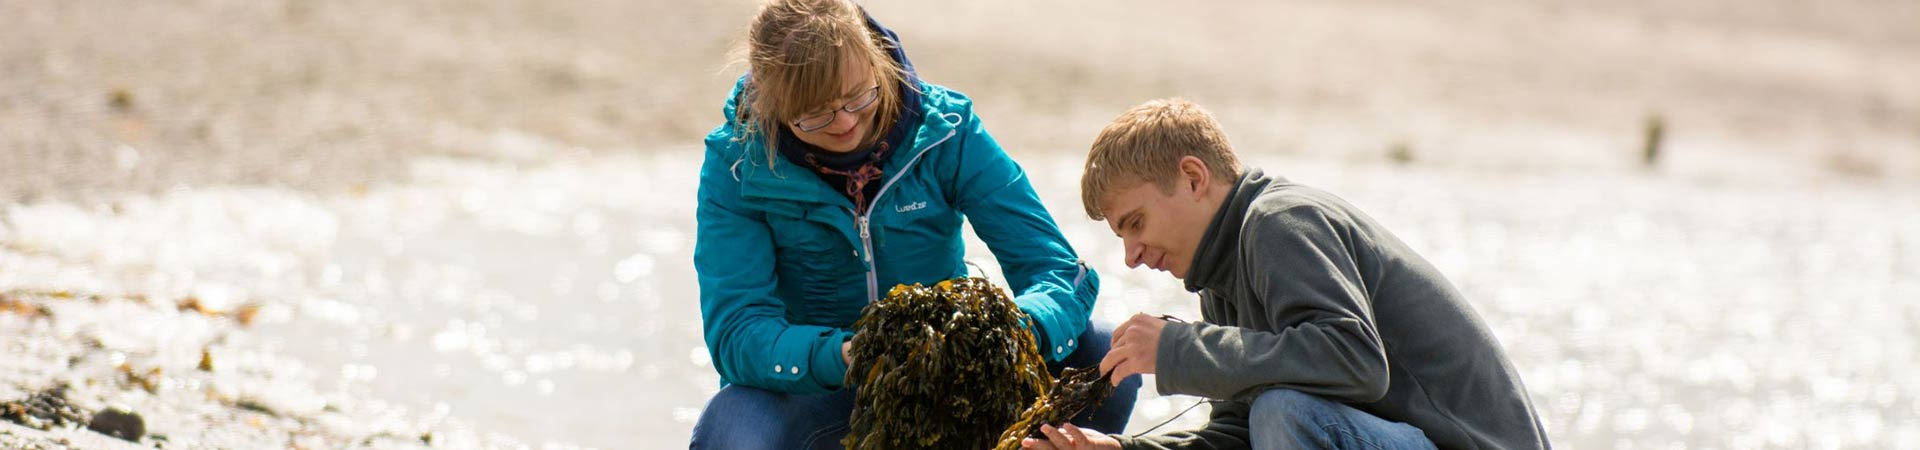 During an open day for prospective students and their families and friends our student ambassadors share their experience of studying marine science at SAMS UHI